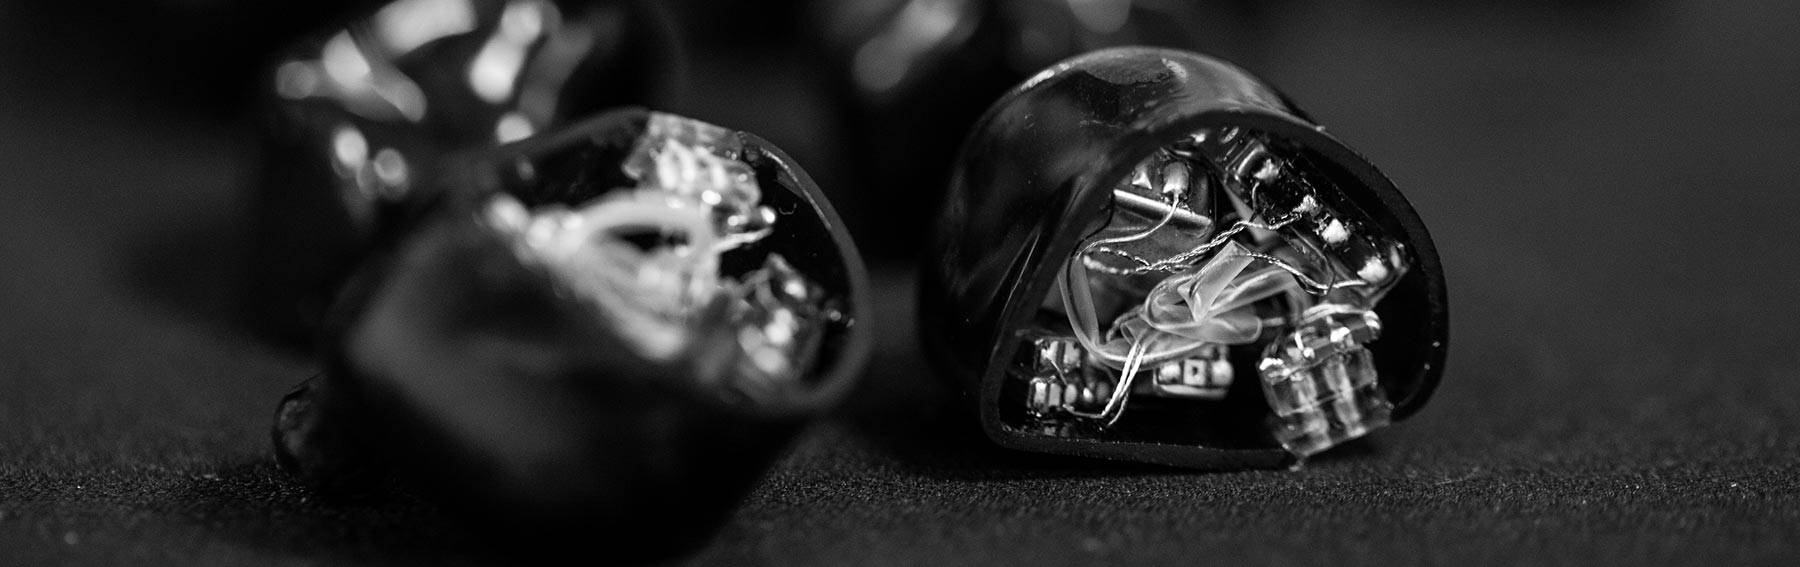 Inner circuits of Empire Ears IEMs